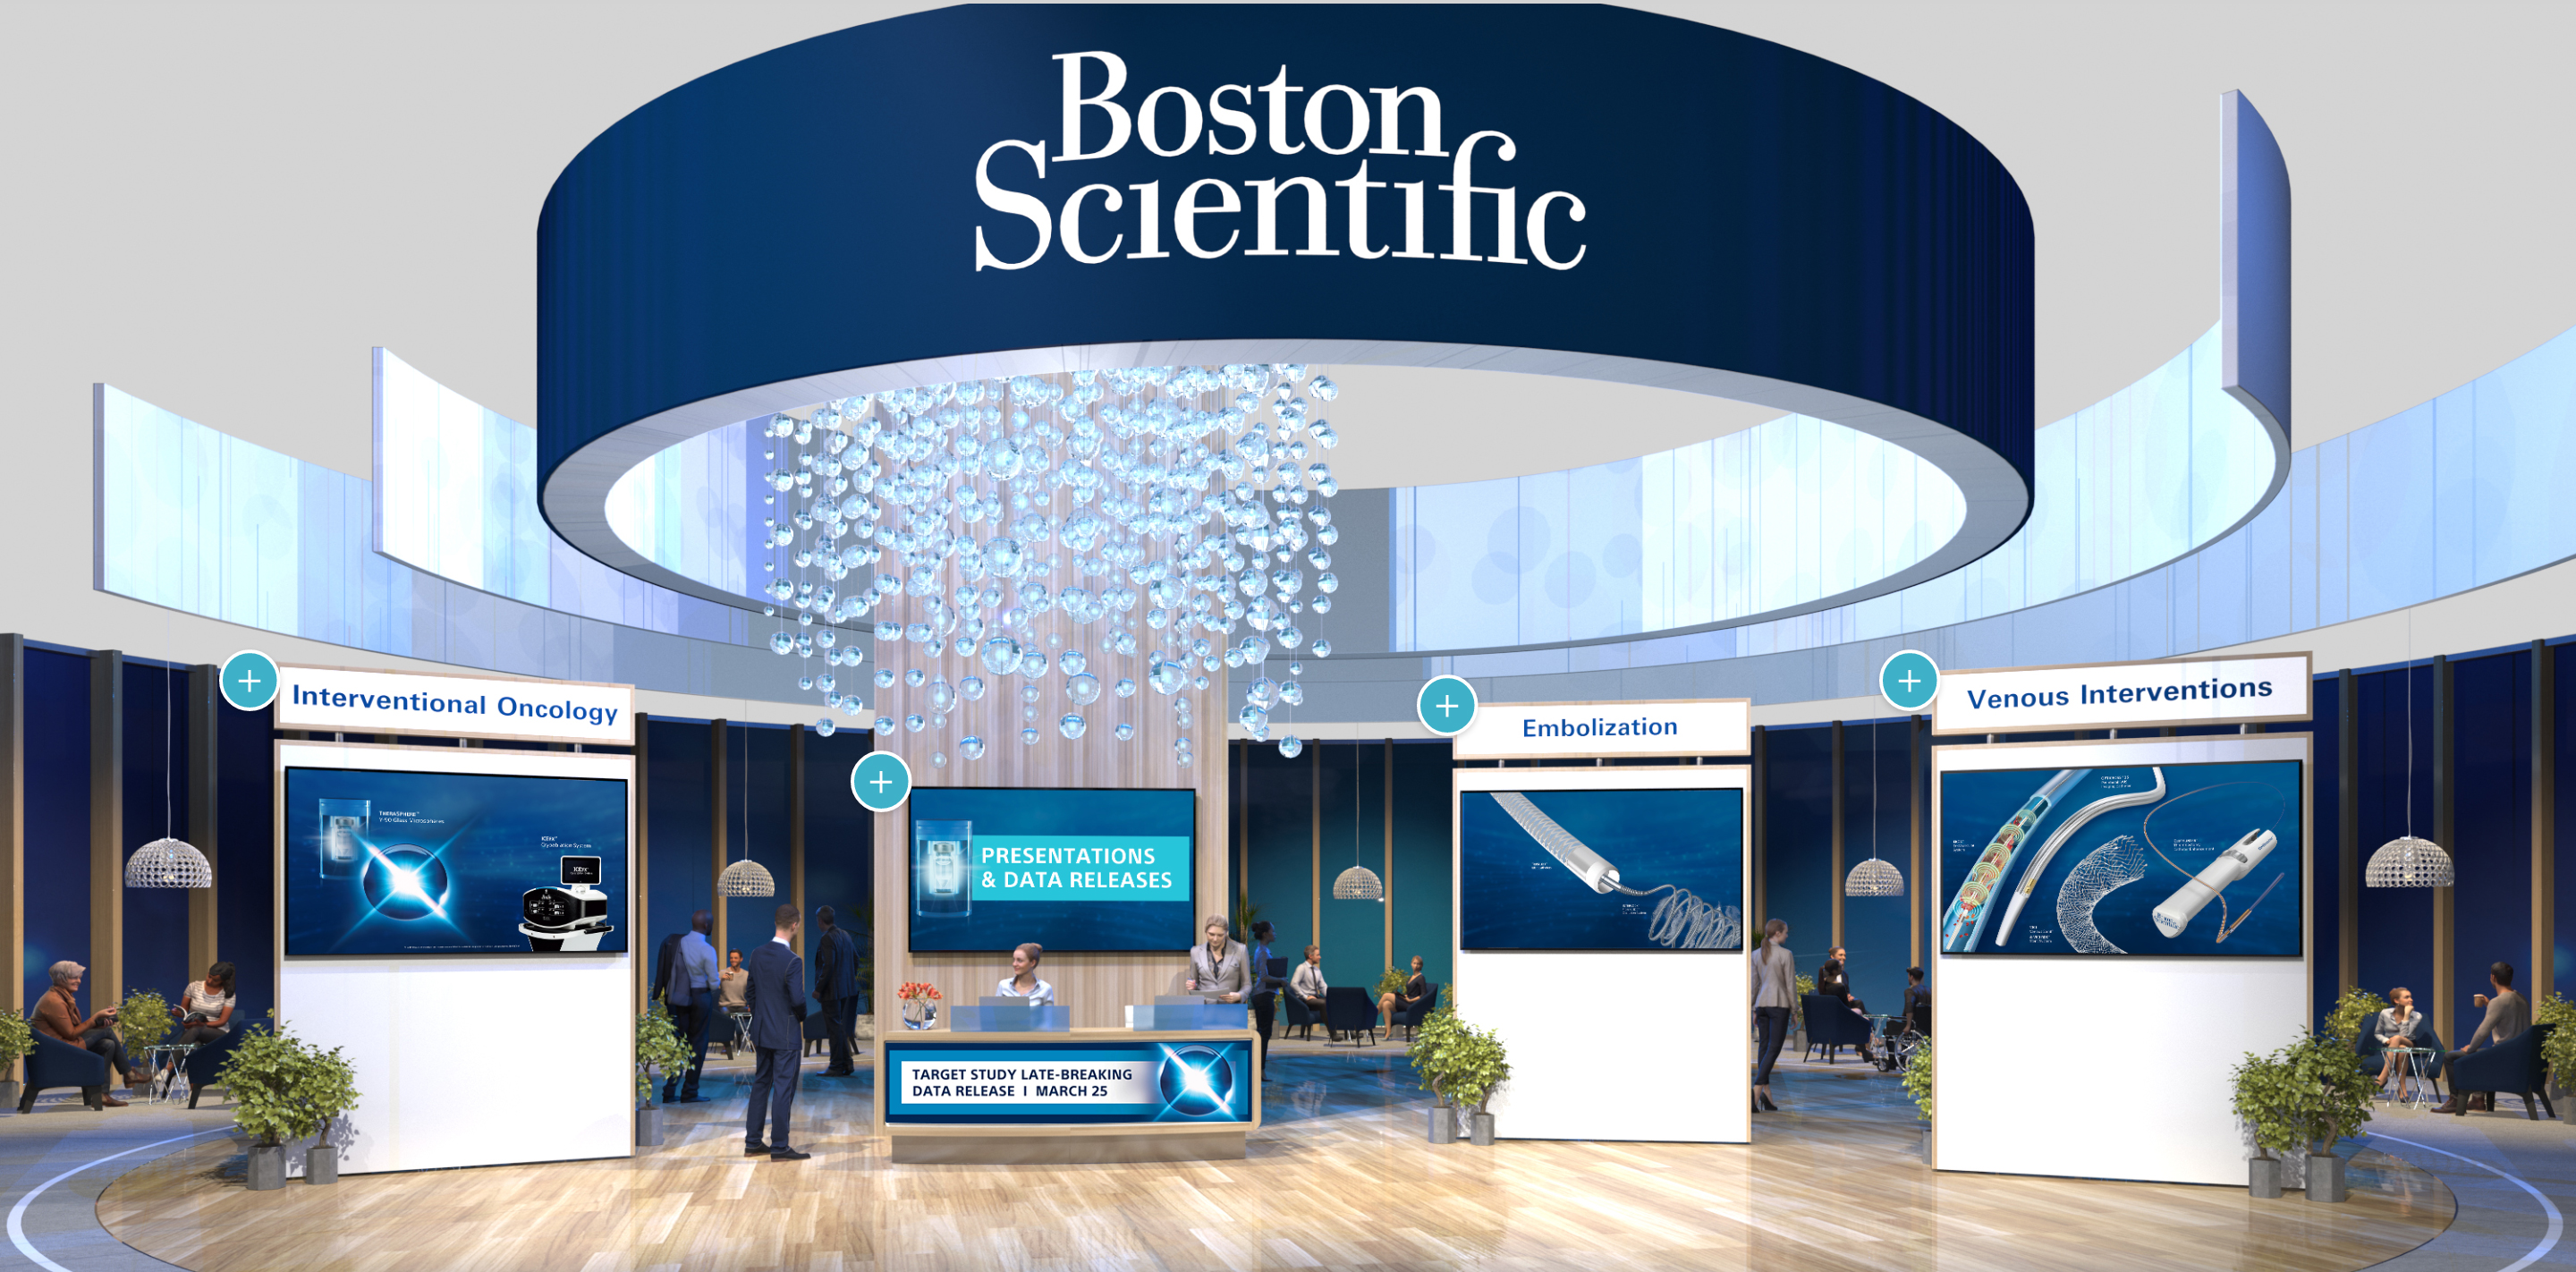 Boston Scientific's Booth at SIR - image.